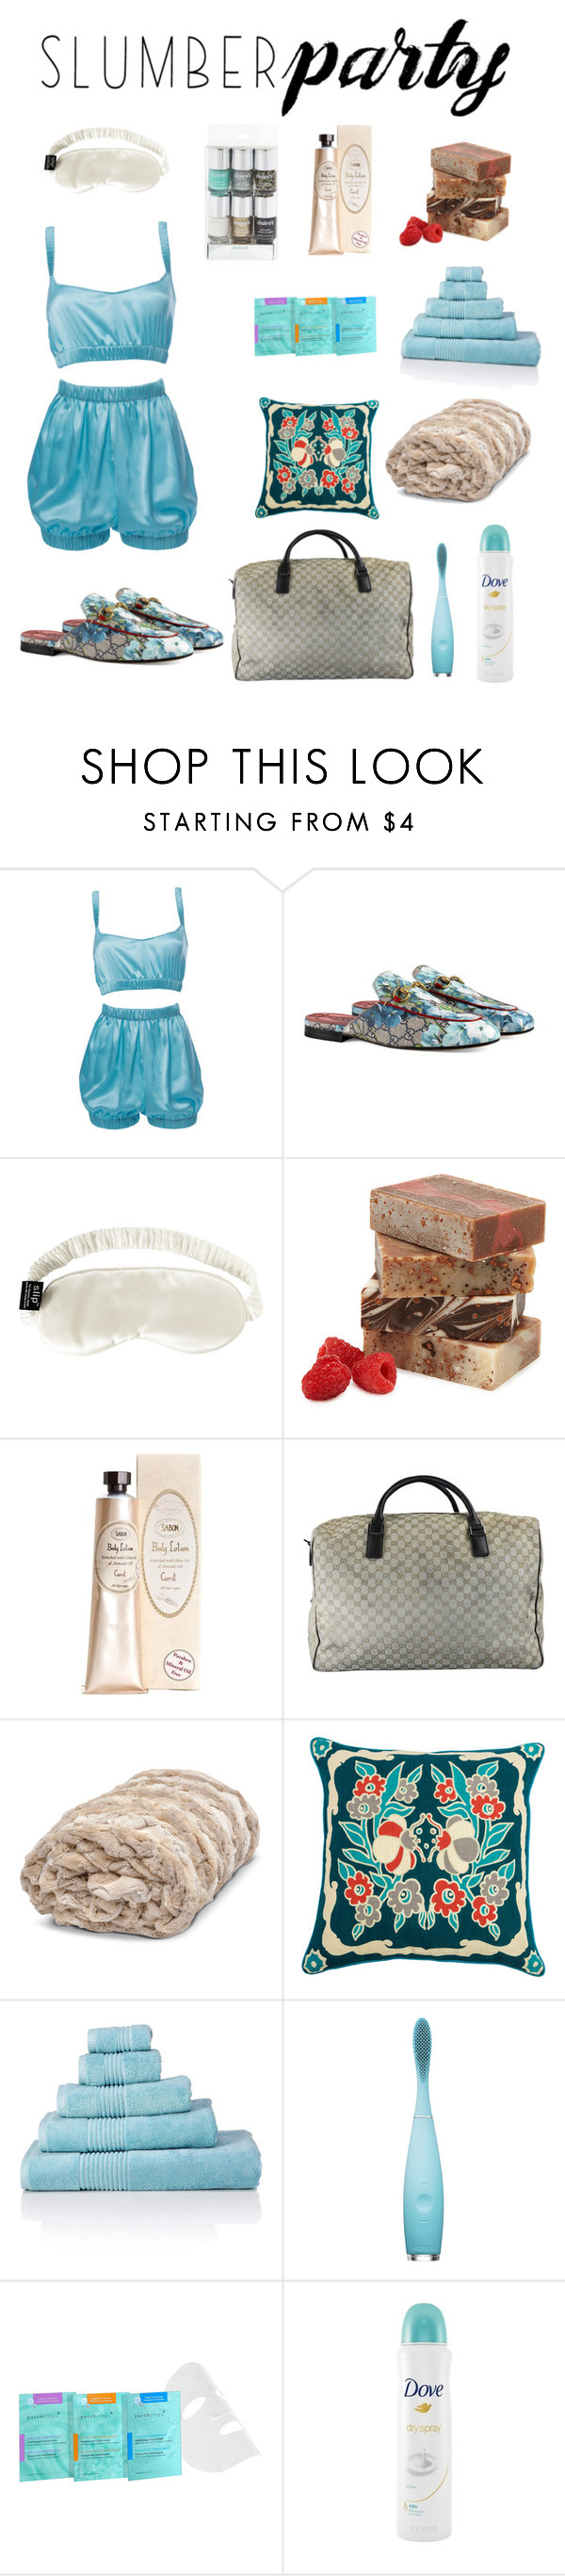 """""""Slumber Party Set - By DreamCloset"""" by soldier4christx4 ❤ liked on Polyvore featuring Roses Are Red, Gucci, Slip, FOREO, Patchology, Dove and slumberparty"""